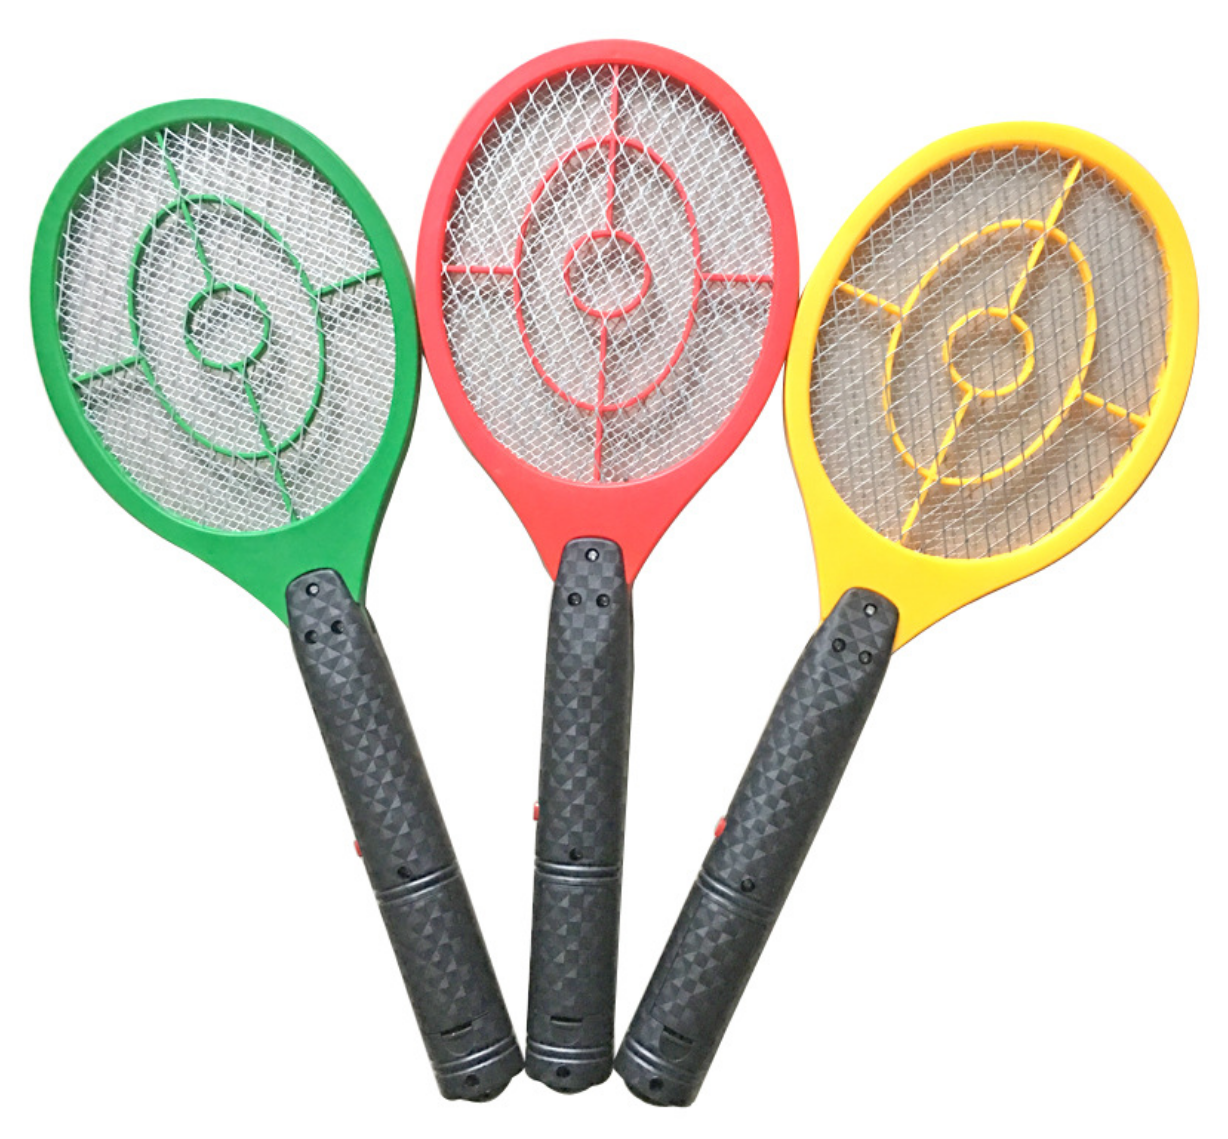 Mosquito swatter electronic fly swatter mosquito killing bat